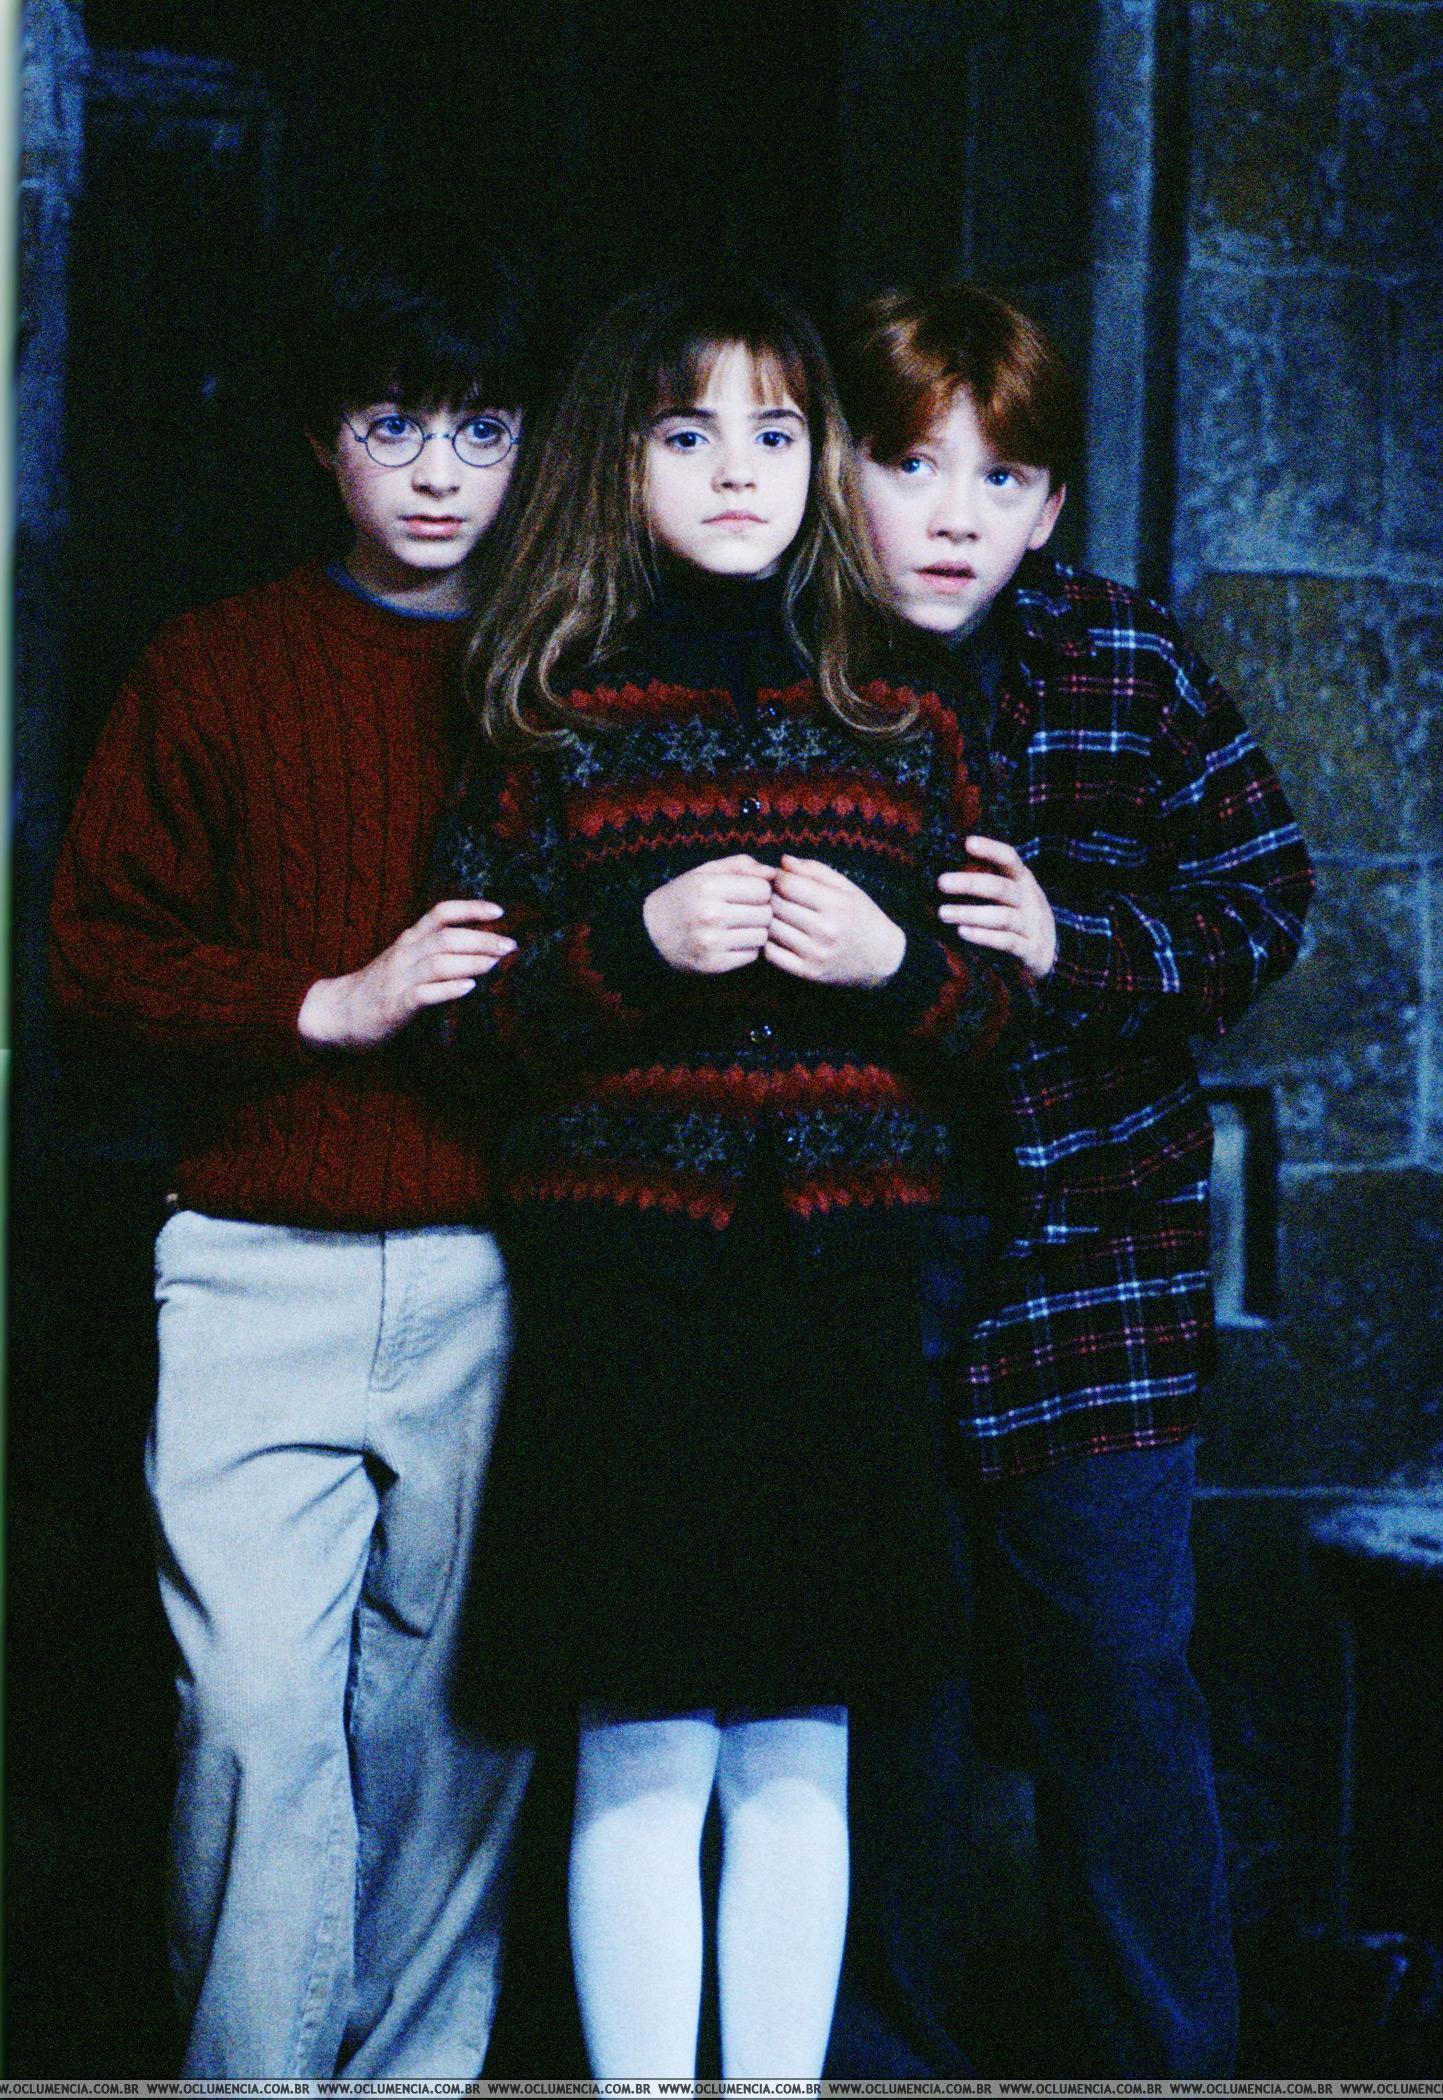 Harry Potter and the Philosopher's Stone > Promotional Stills